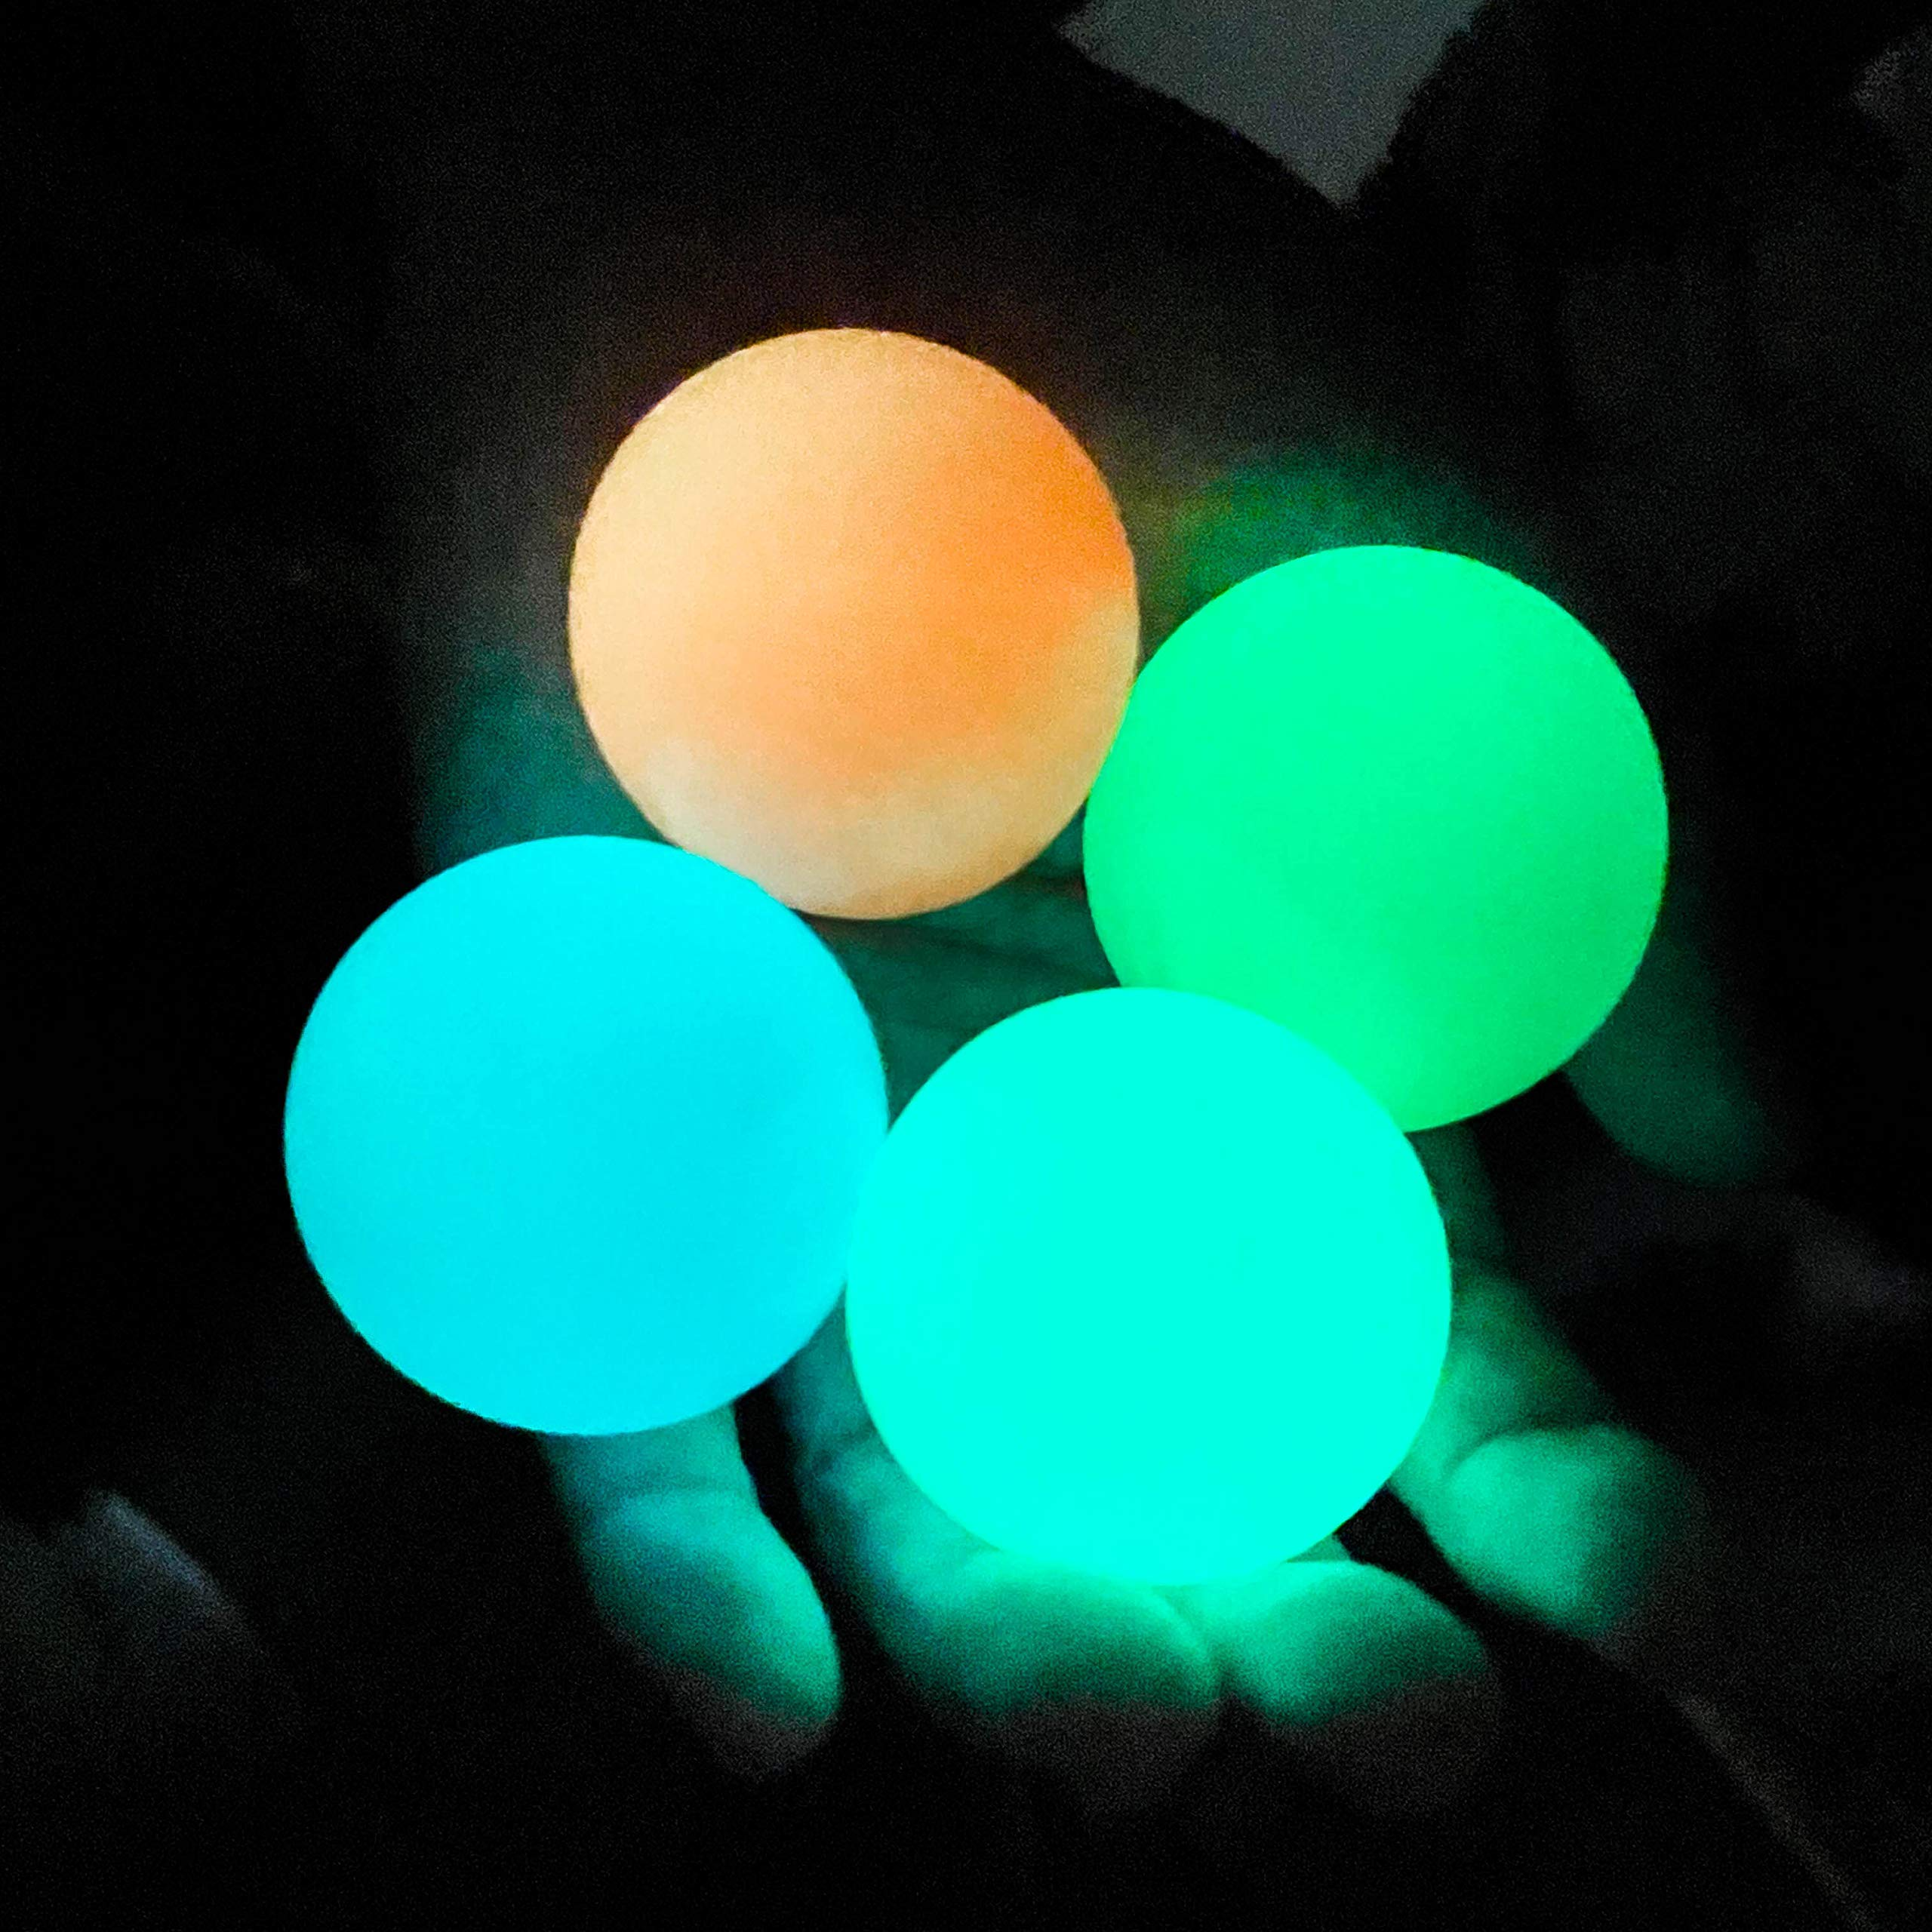 Glow in The Dark Sticky Ceiling Balls,Fidget Balls for Adults and Kids,Glow Stress Balls,Squishy Toys for Kids,Fidget Toys,Sensory Toys,Stress Toys,Gifts for Adults and Kids(4Pcs)